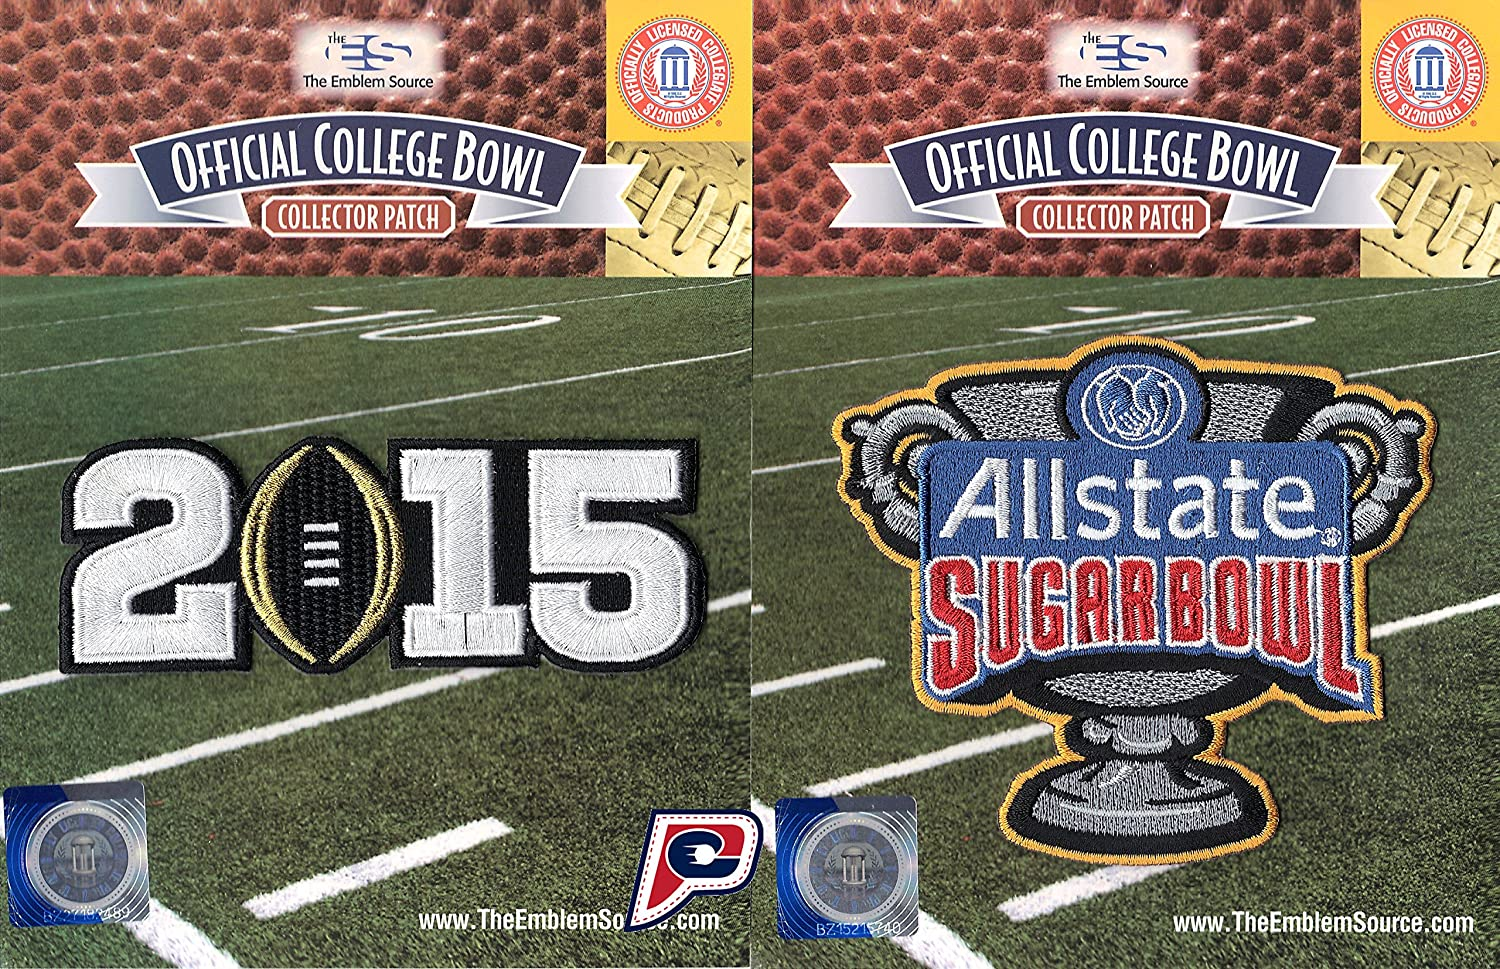 2015 College Football National Champions Ohio State Buckeyes Jersey Patch Bowl